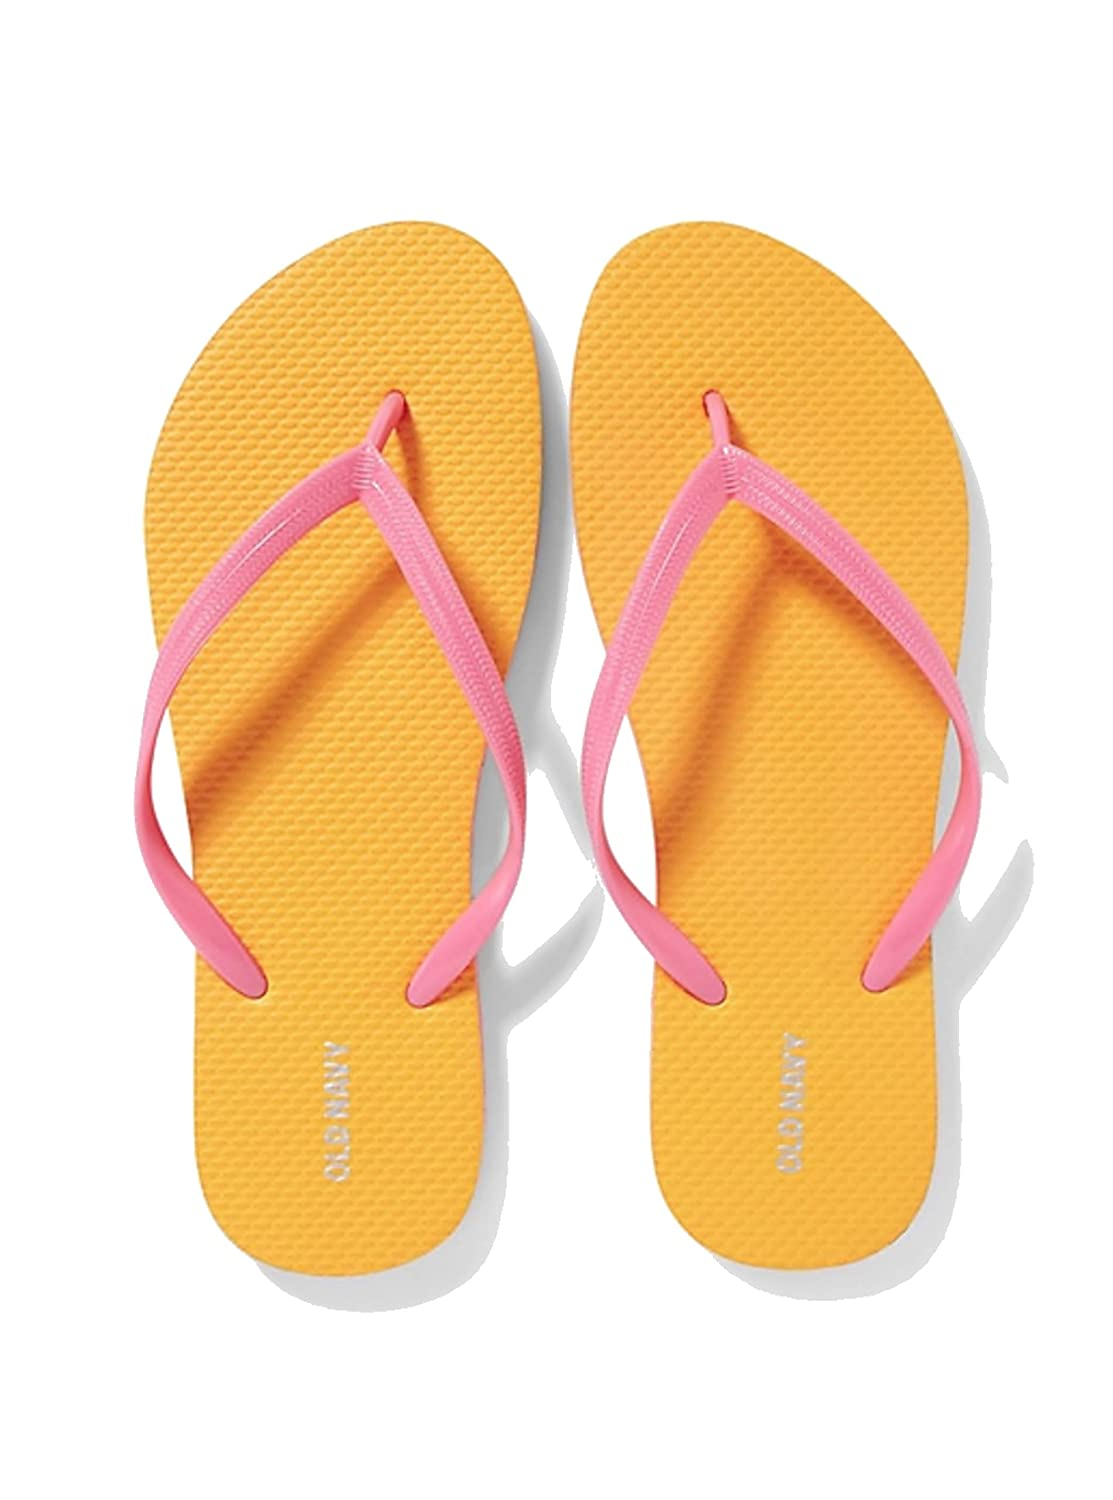 09c74b15d Amazon.com  Old Navy Women Beach Summer Casual Flip Flop Sandals  Clothing